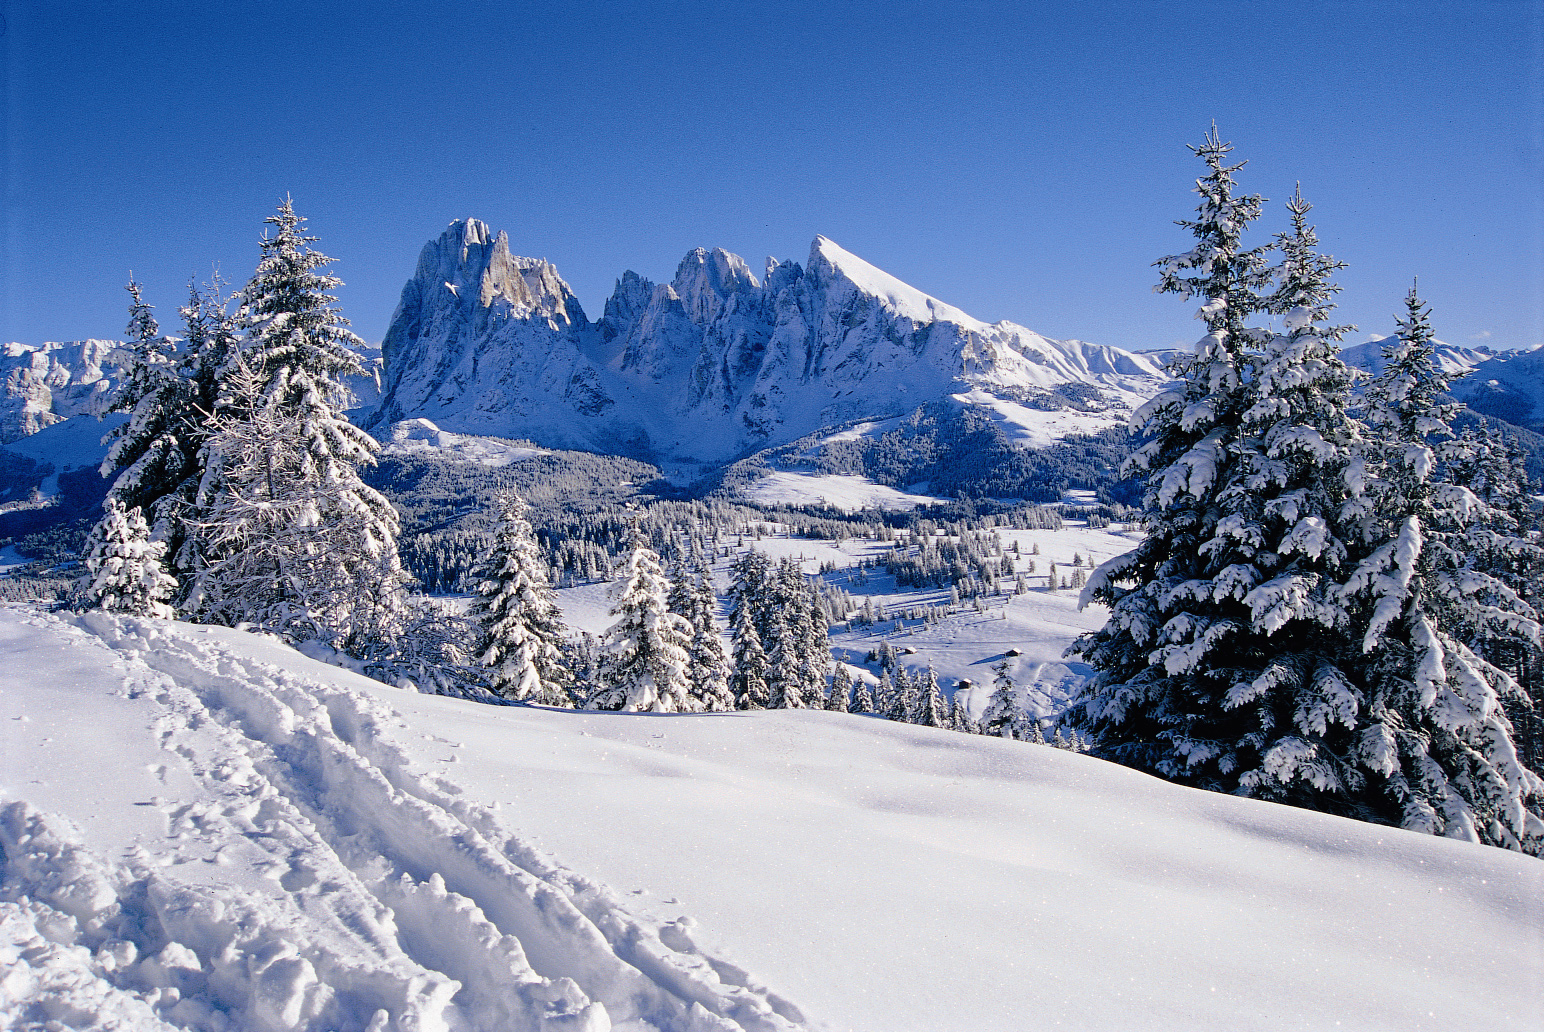 Neve in montagna